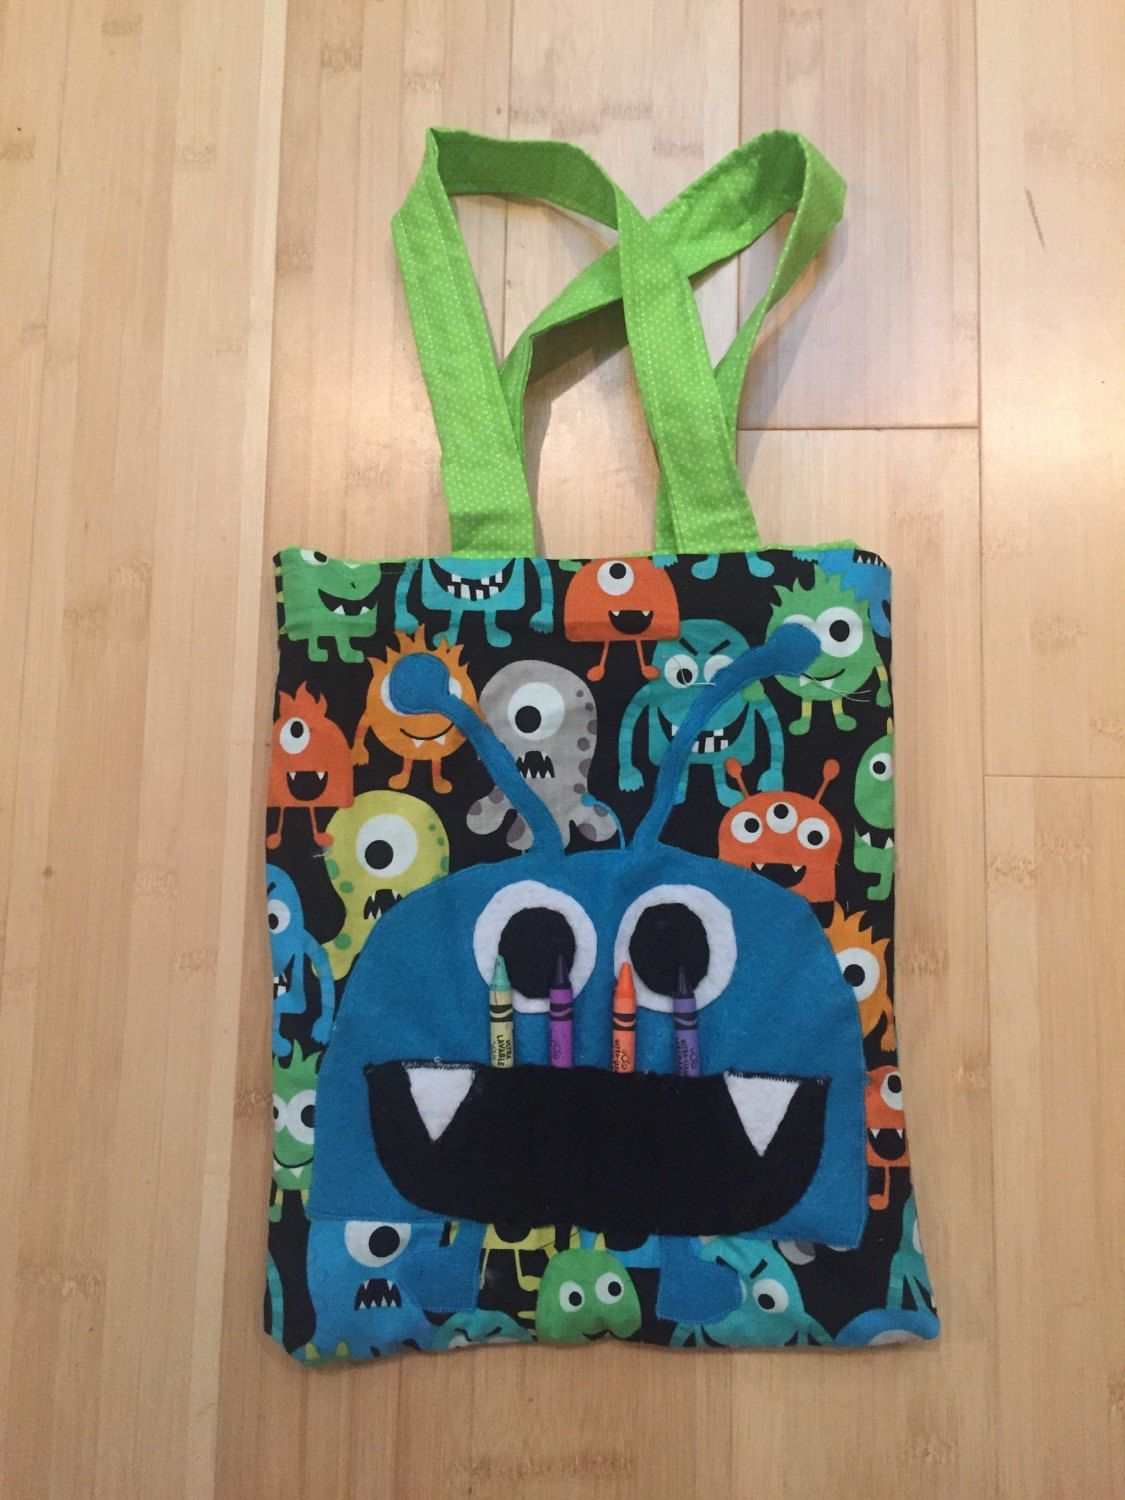 monster coloring book tote bag childrens tote bag crayon holder birthday gift - Coloring Book And Crayon Holder